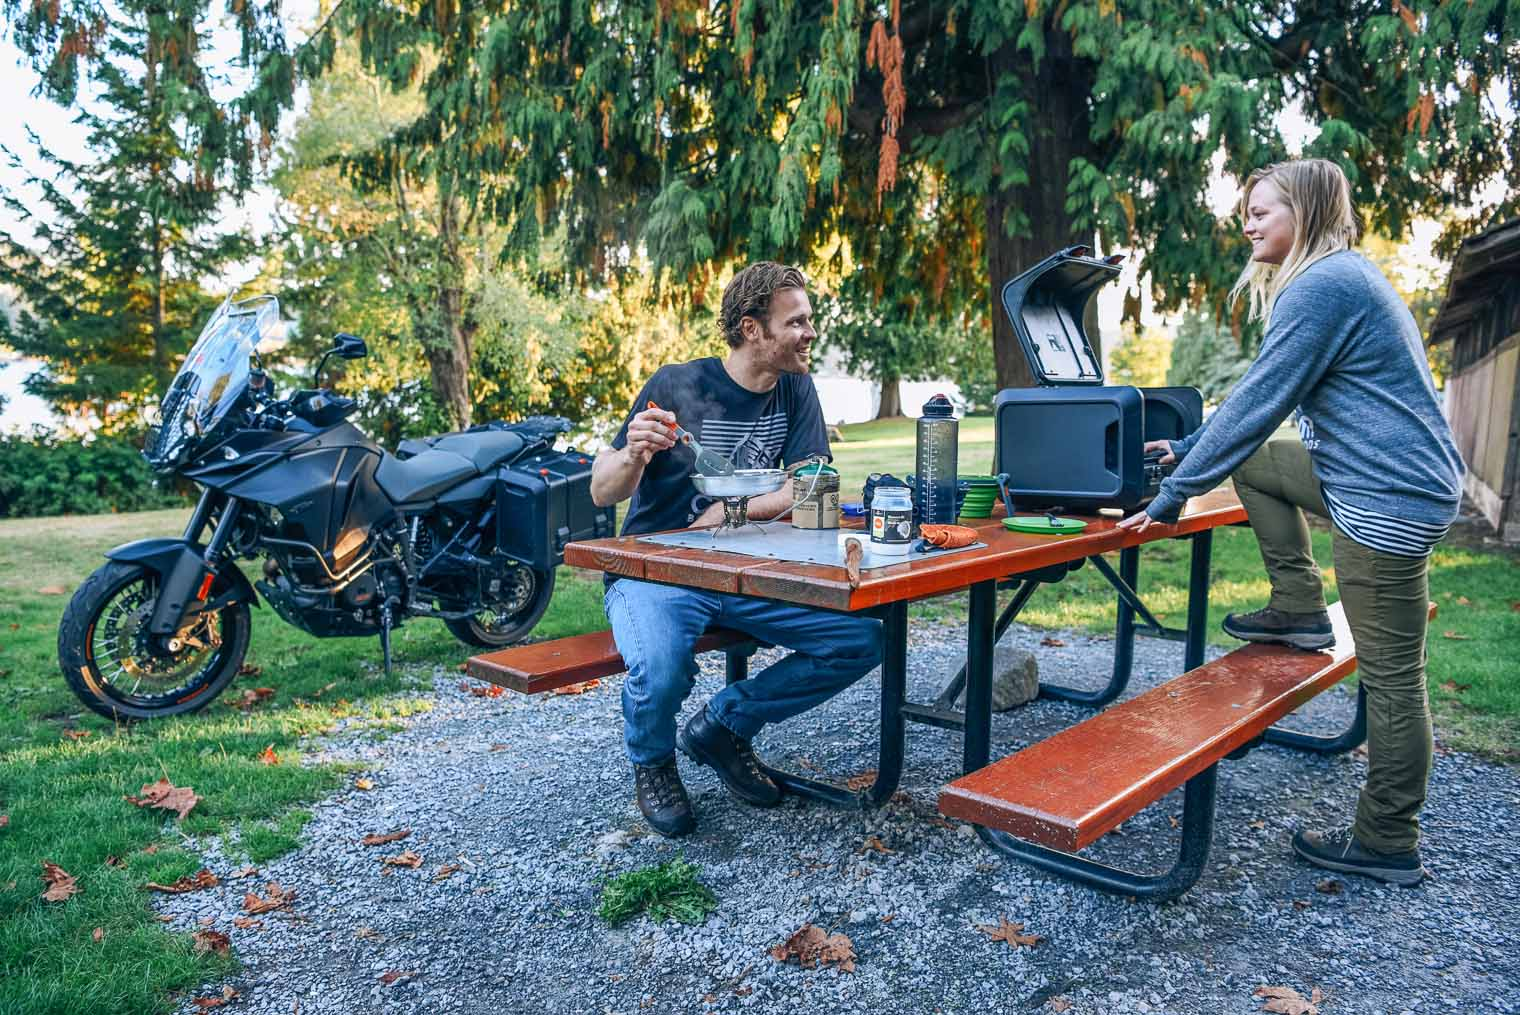 A couple eating at a picnic table with a motorcycle in the background